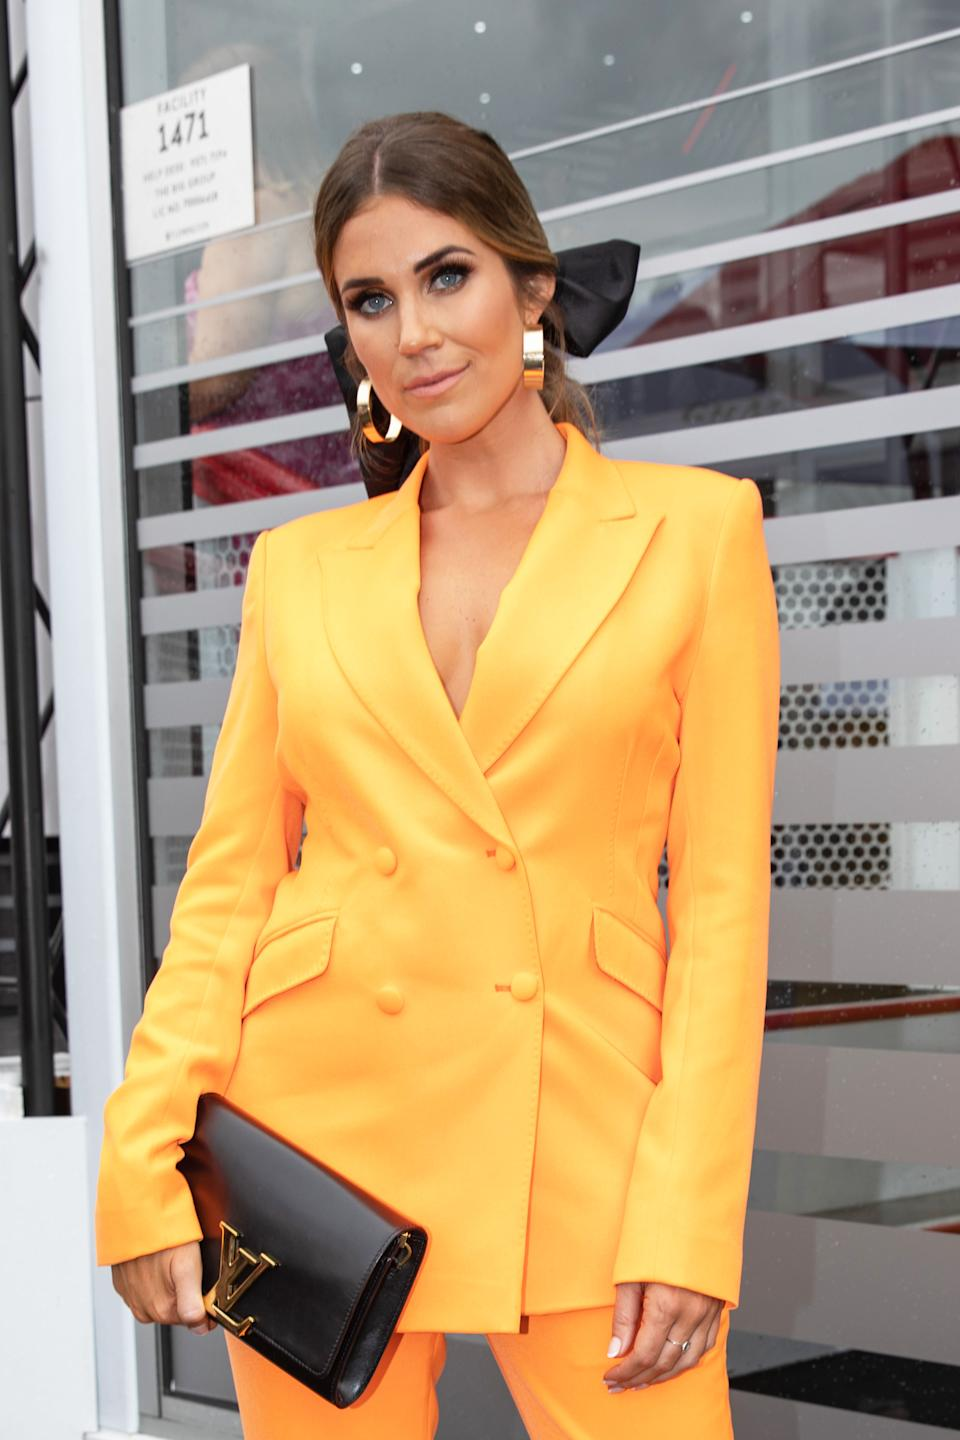 Georgia Love (pictured at Melbourne Cup in yellow suit) says Bachelor in Paradise's Ciarran Stott Tim Hanley 'horribly unattractive'